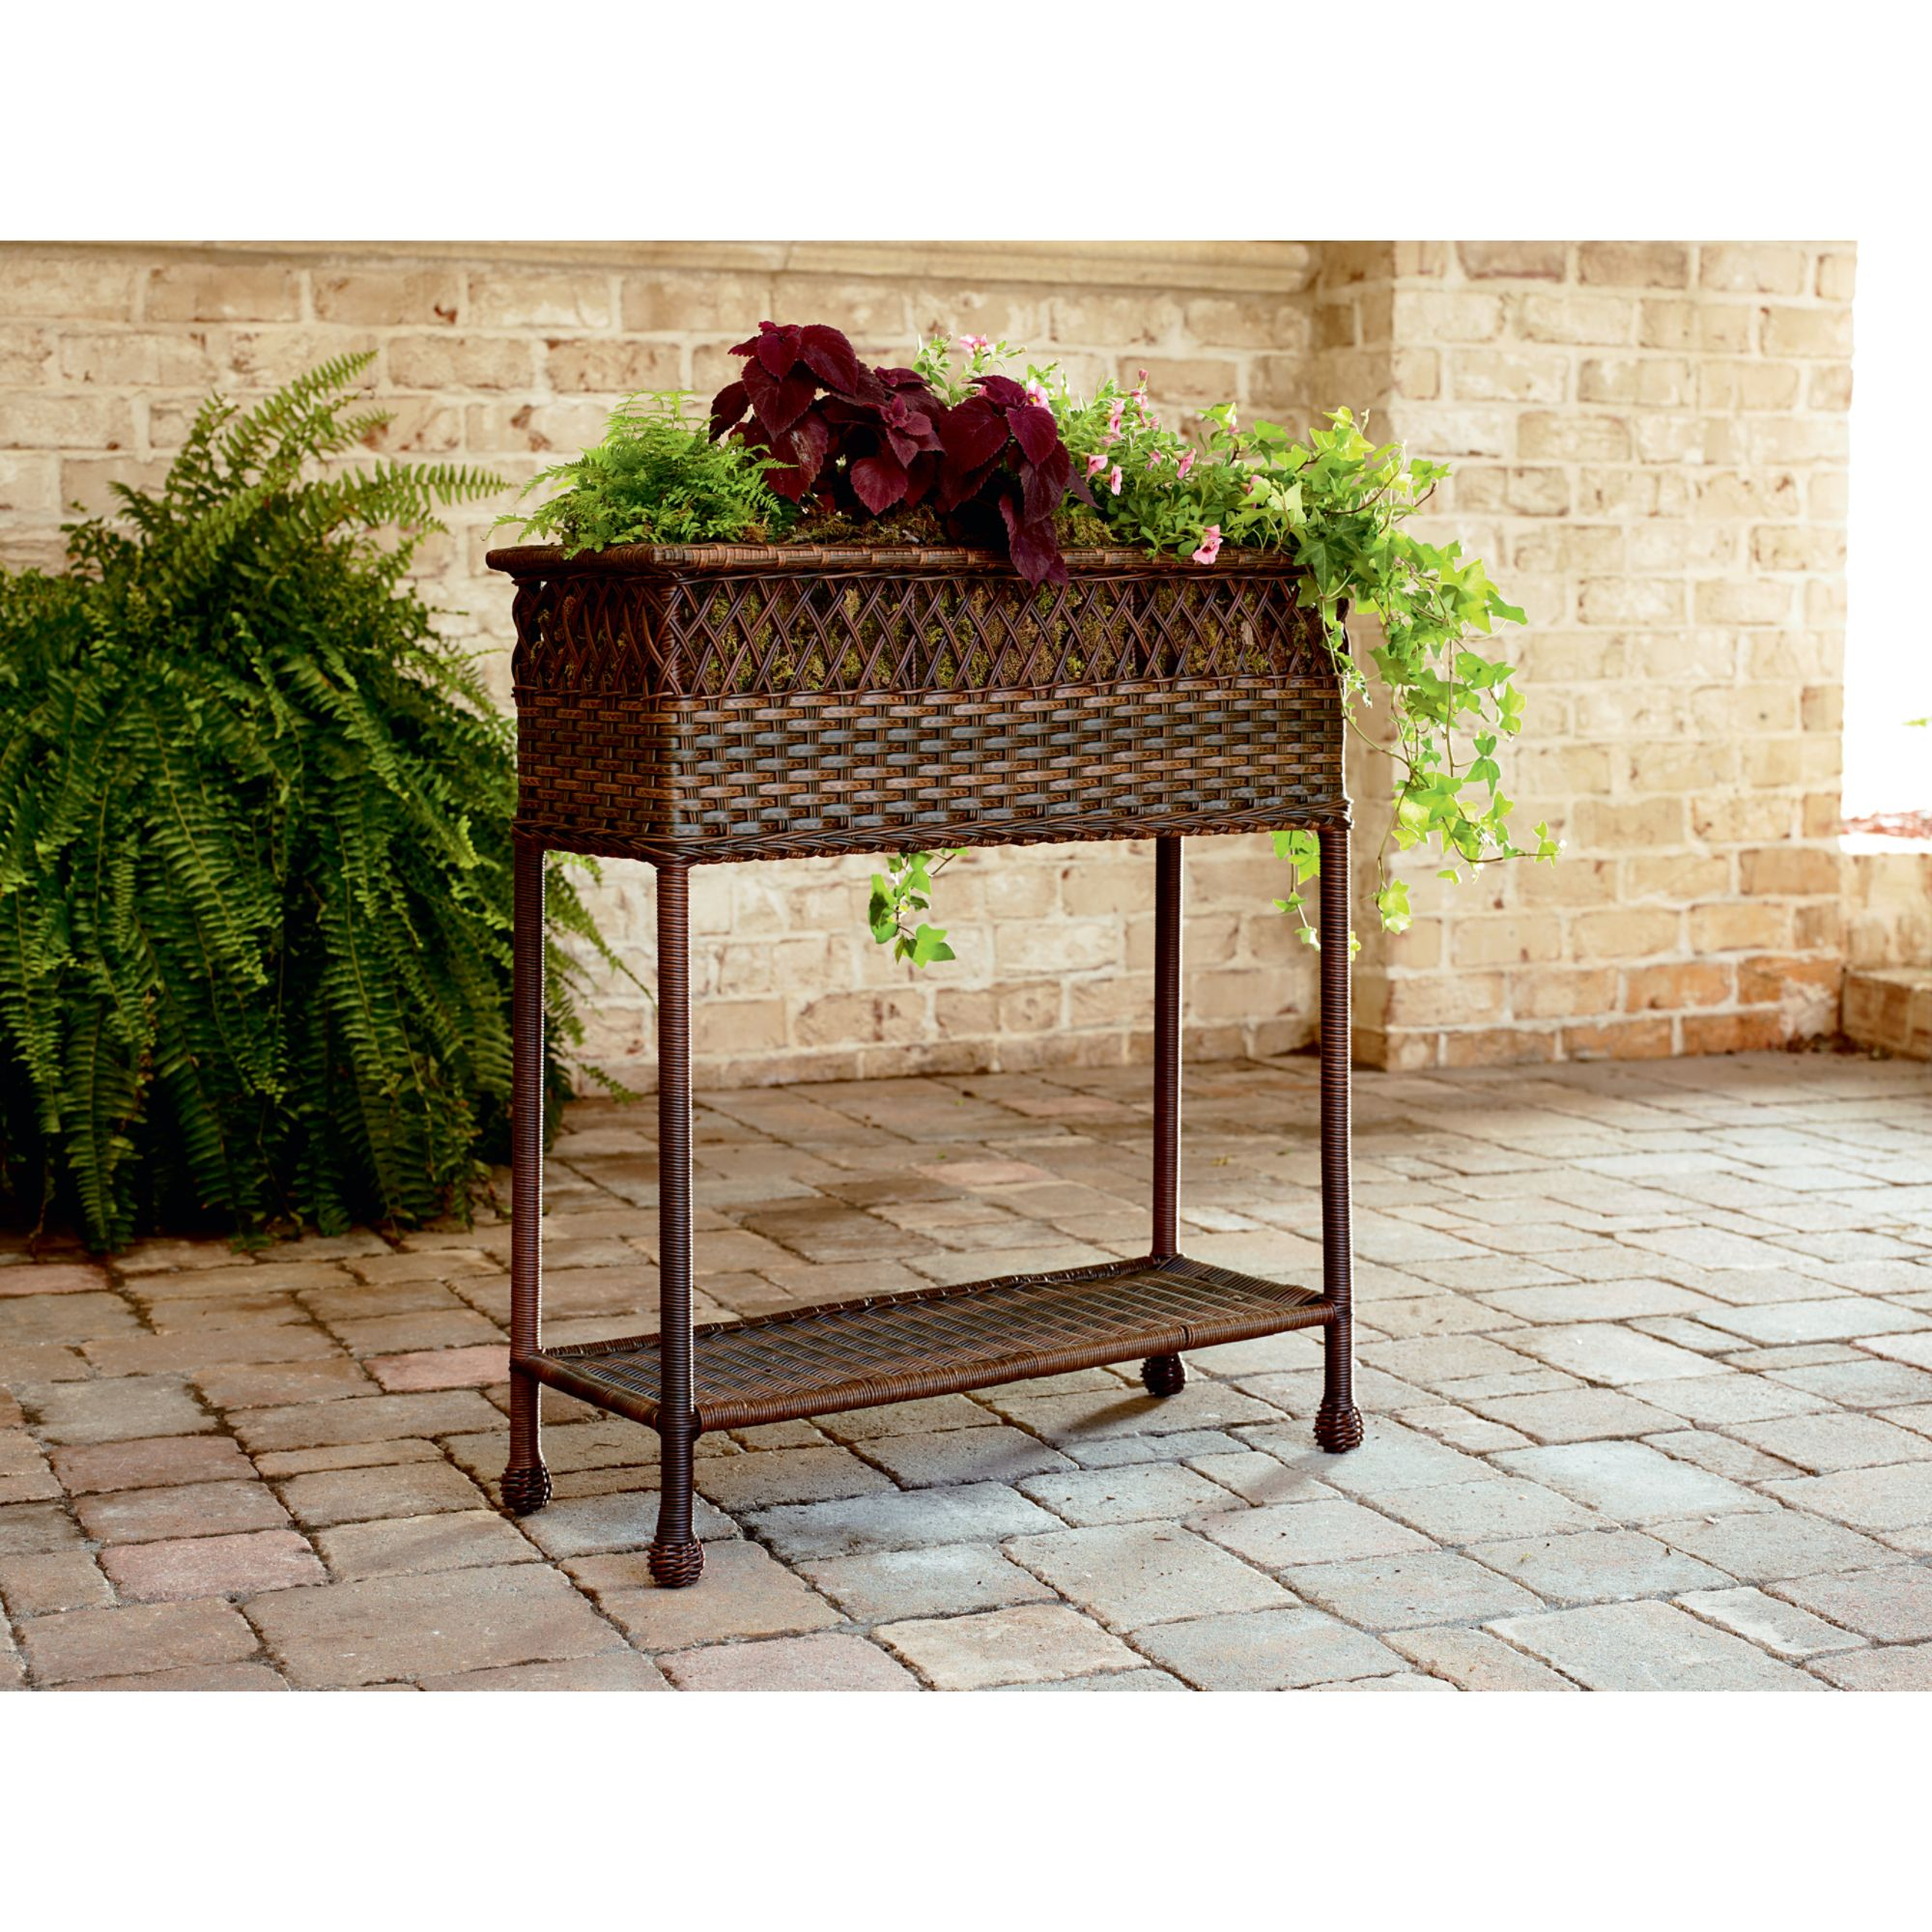 Bamboo Planter Stand Ty Pennington Mayfield Planter Bring Style Outdoors With